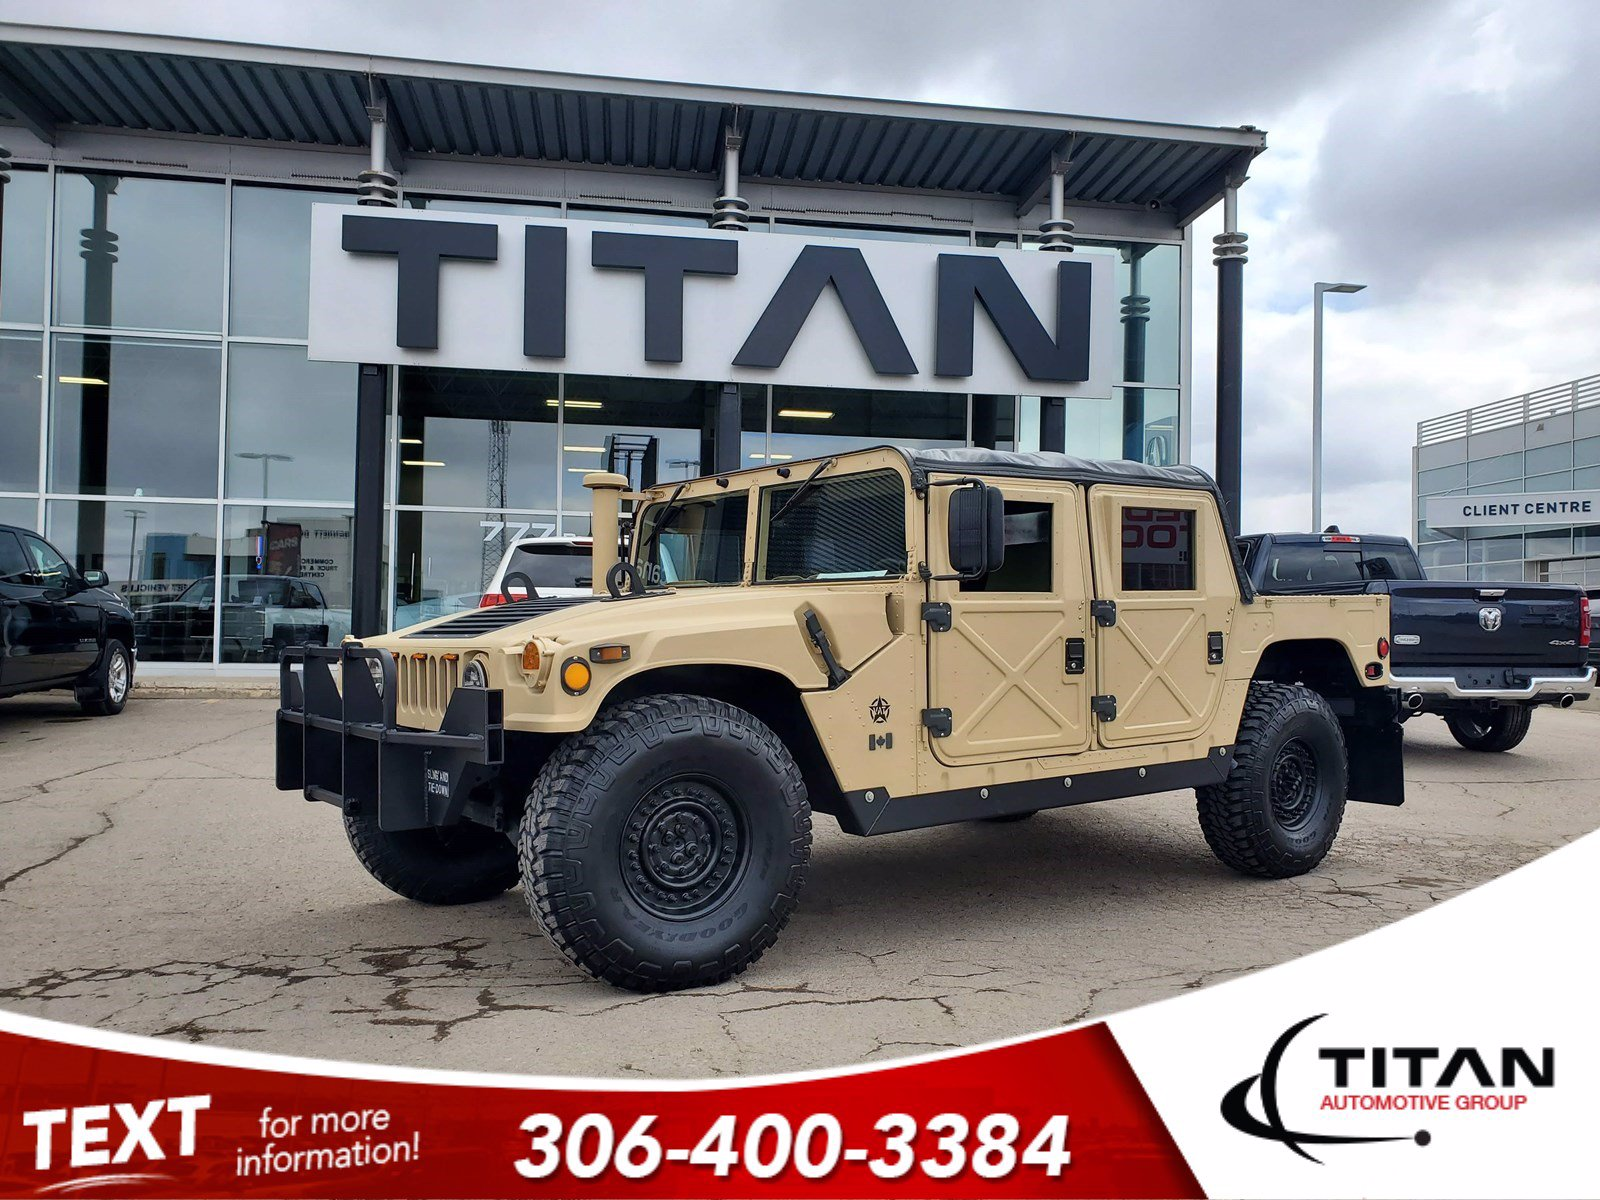 Pre-Owned 1994 A.M General Hummer Military Edition | Humvee | 6.5L V8 Diesel | 4x4 | Removable Soft Top | 37 Tires | Iconic